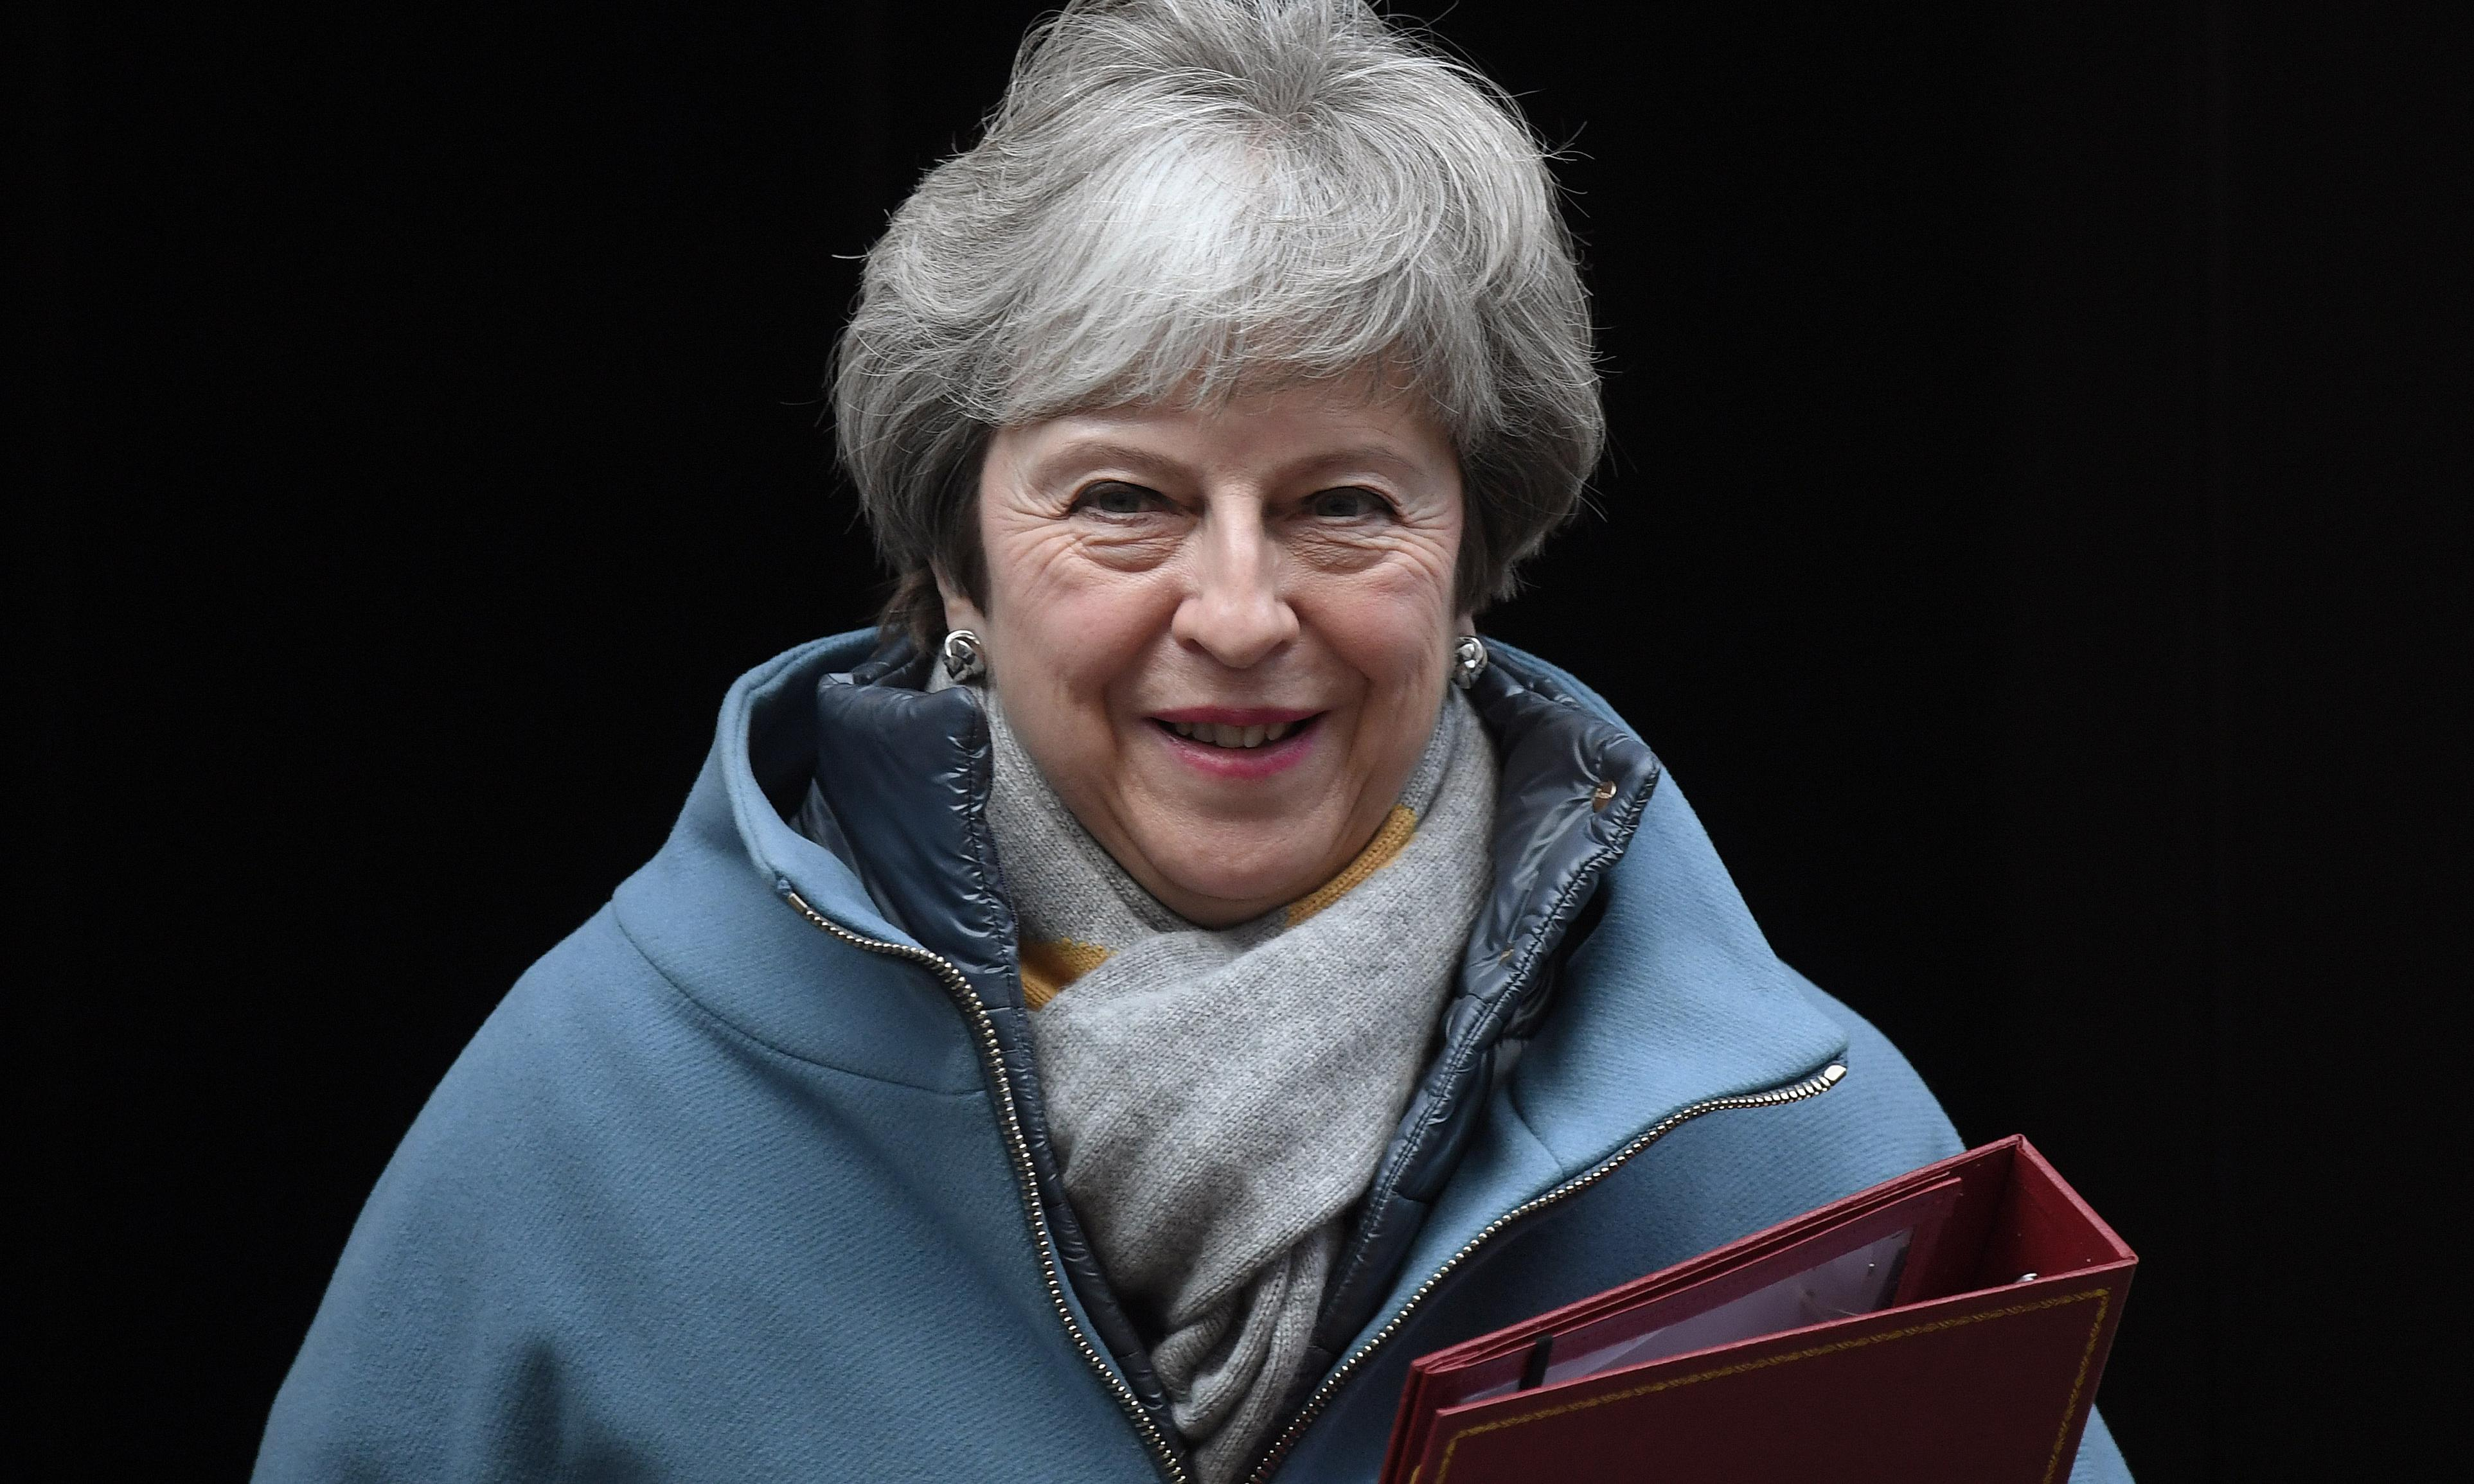 Theresa May and the true threat to social cohesion